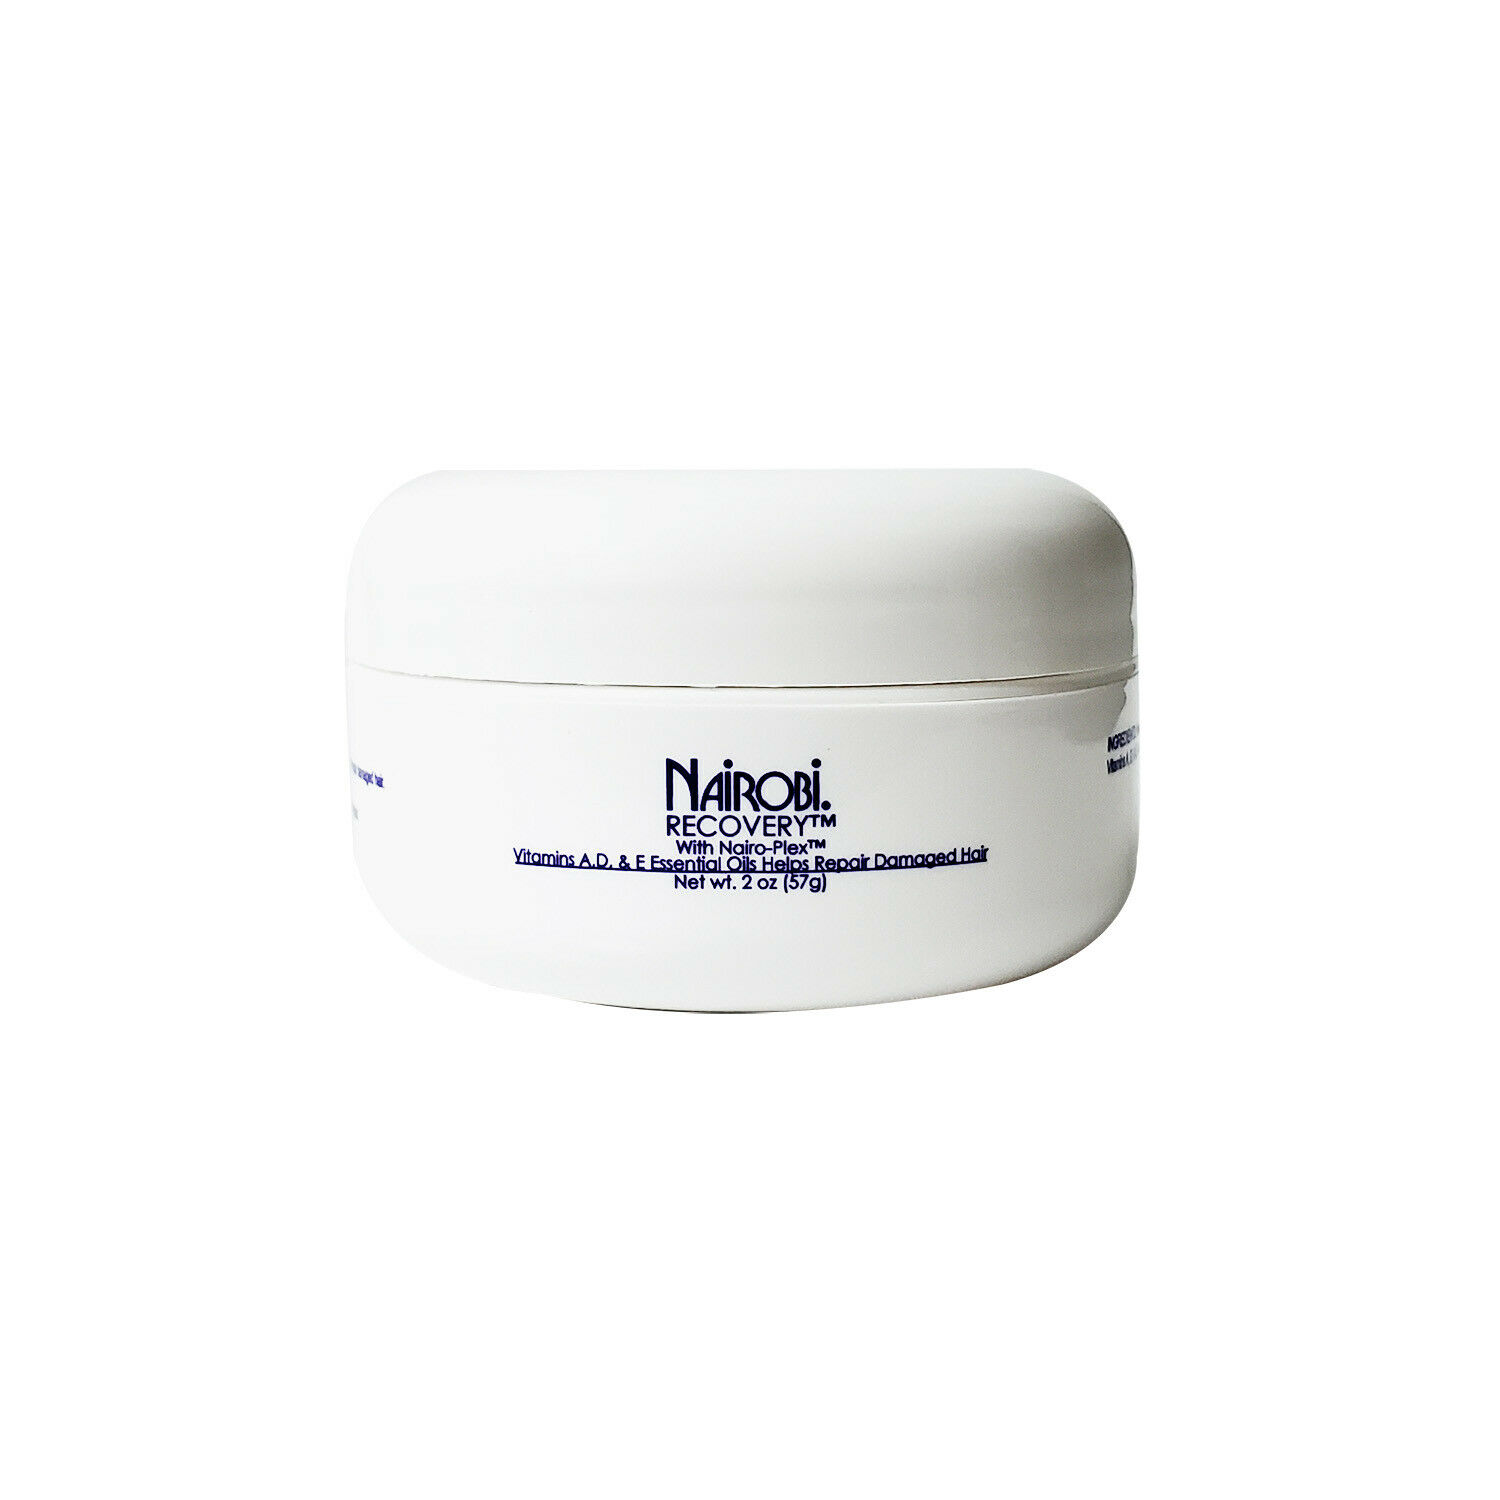 Nairobi Recovery with Nairo-Plex for Repair Damaged Hair – 2 oz. (Free Shipping) Hair Care & Styling